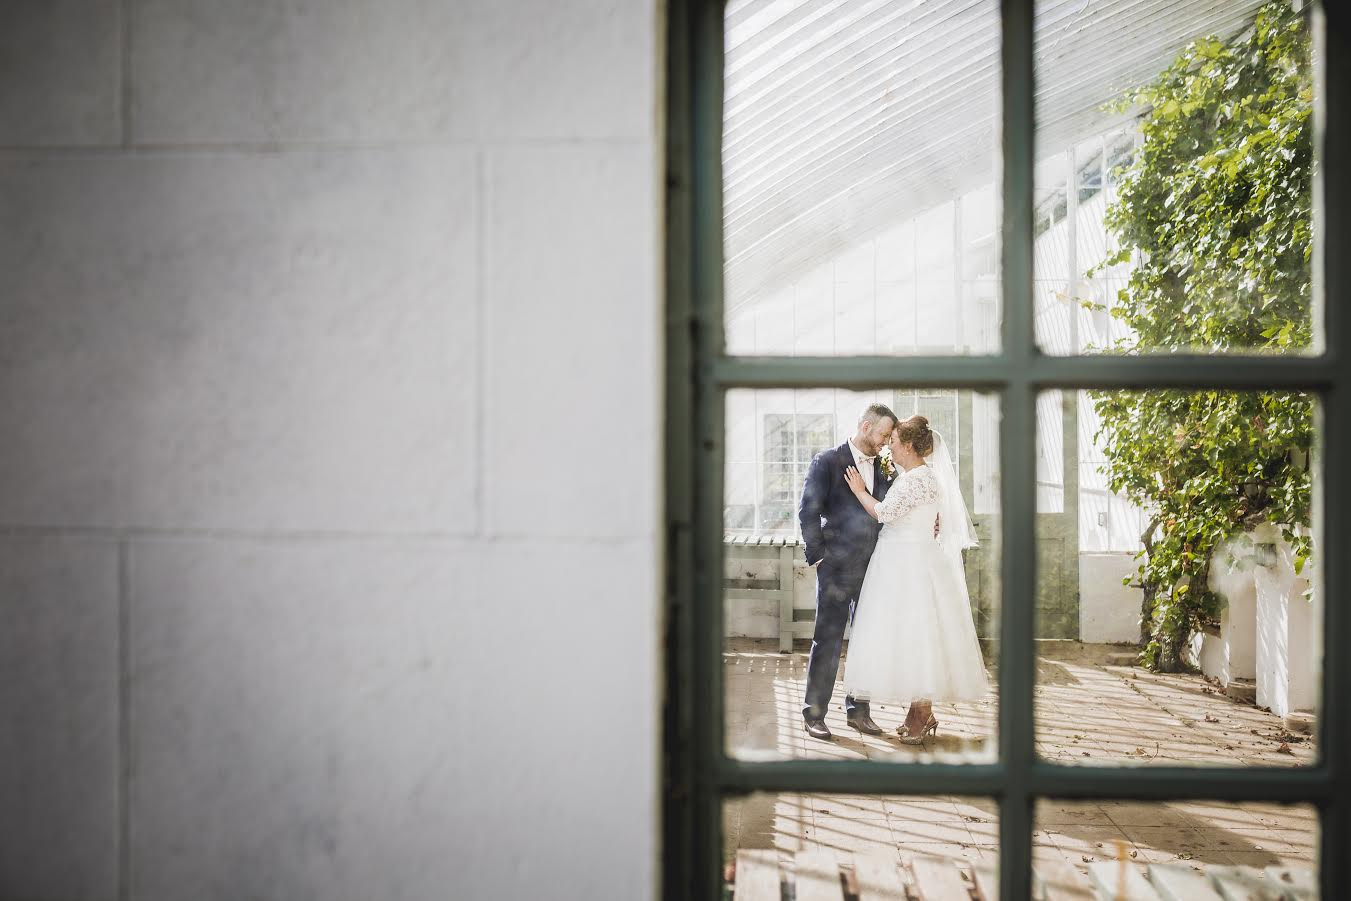 Twirls & Tea: Sarah + Ian's Vintage Wedding At The Hillgrove Hotel